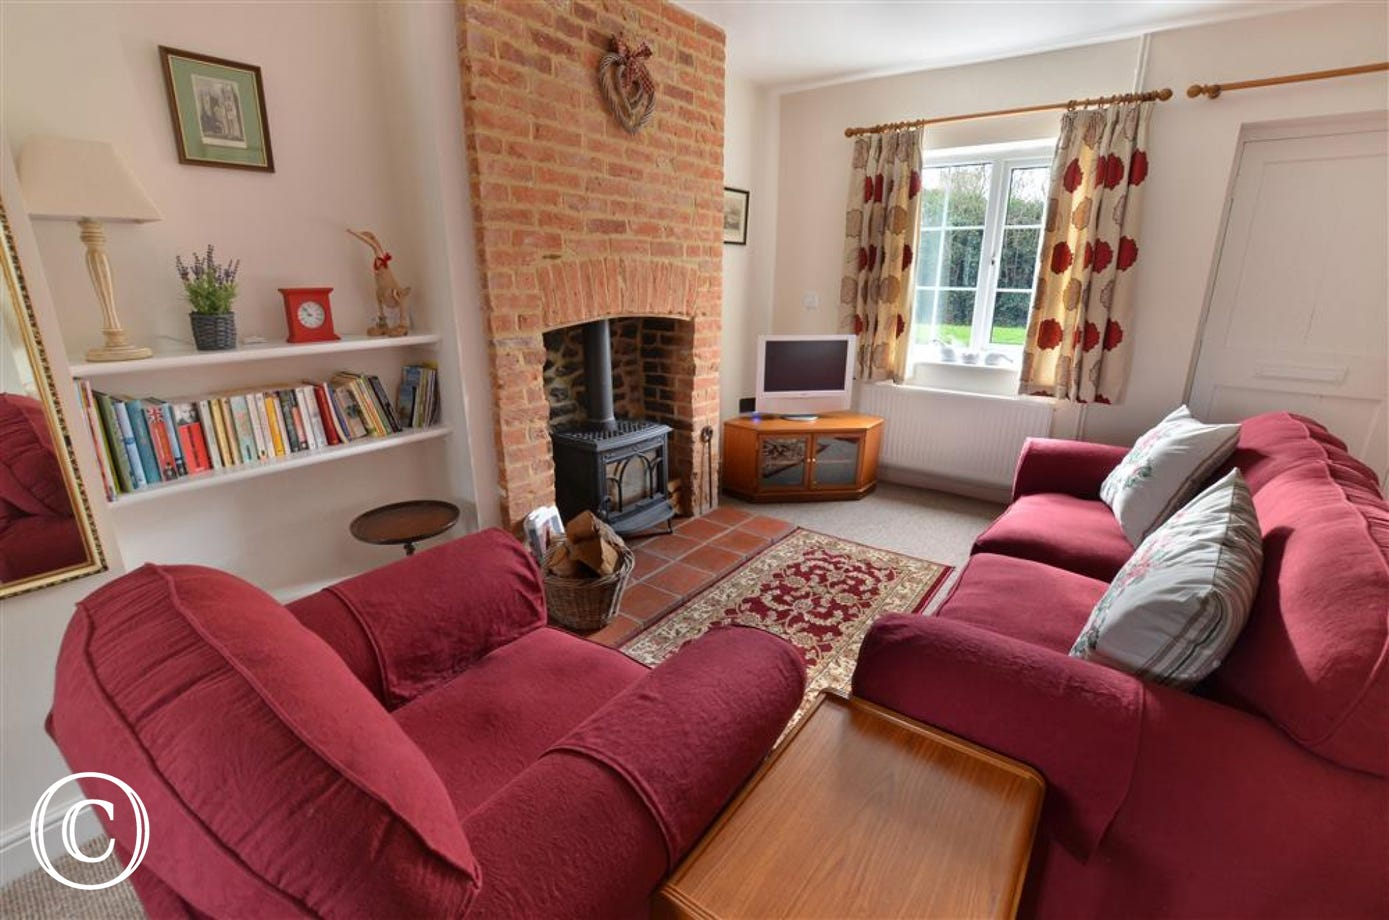 A cosy seating area around the log burner will ensure you have the perfect place for reading or watching the tv.